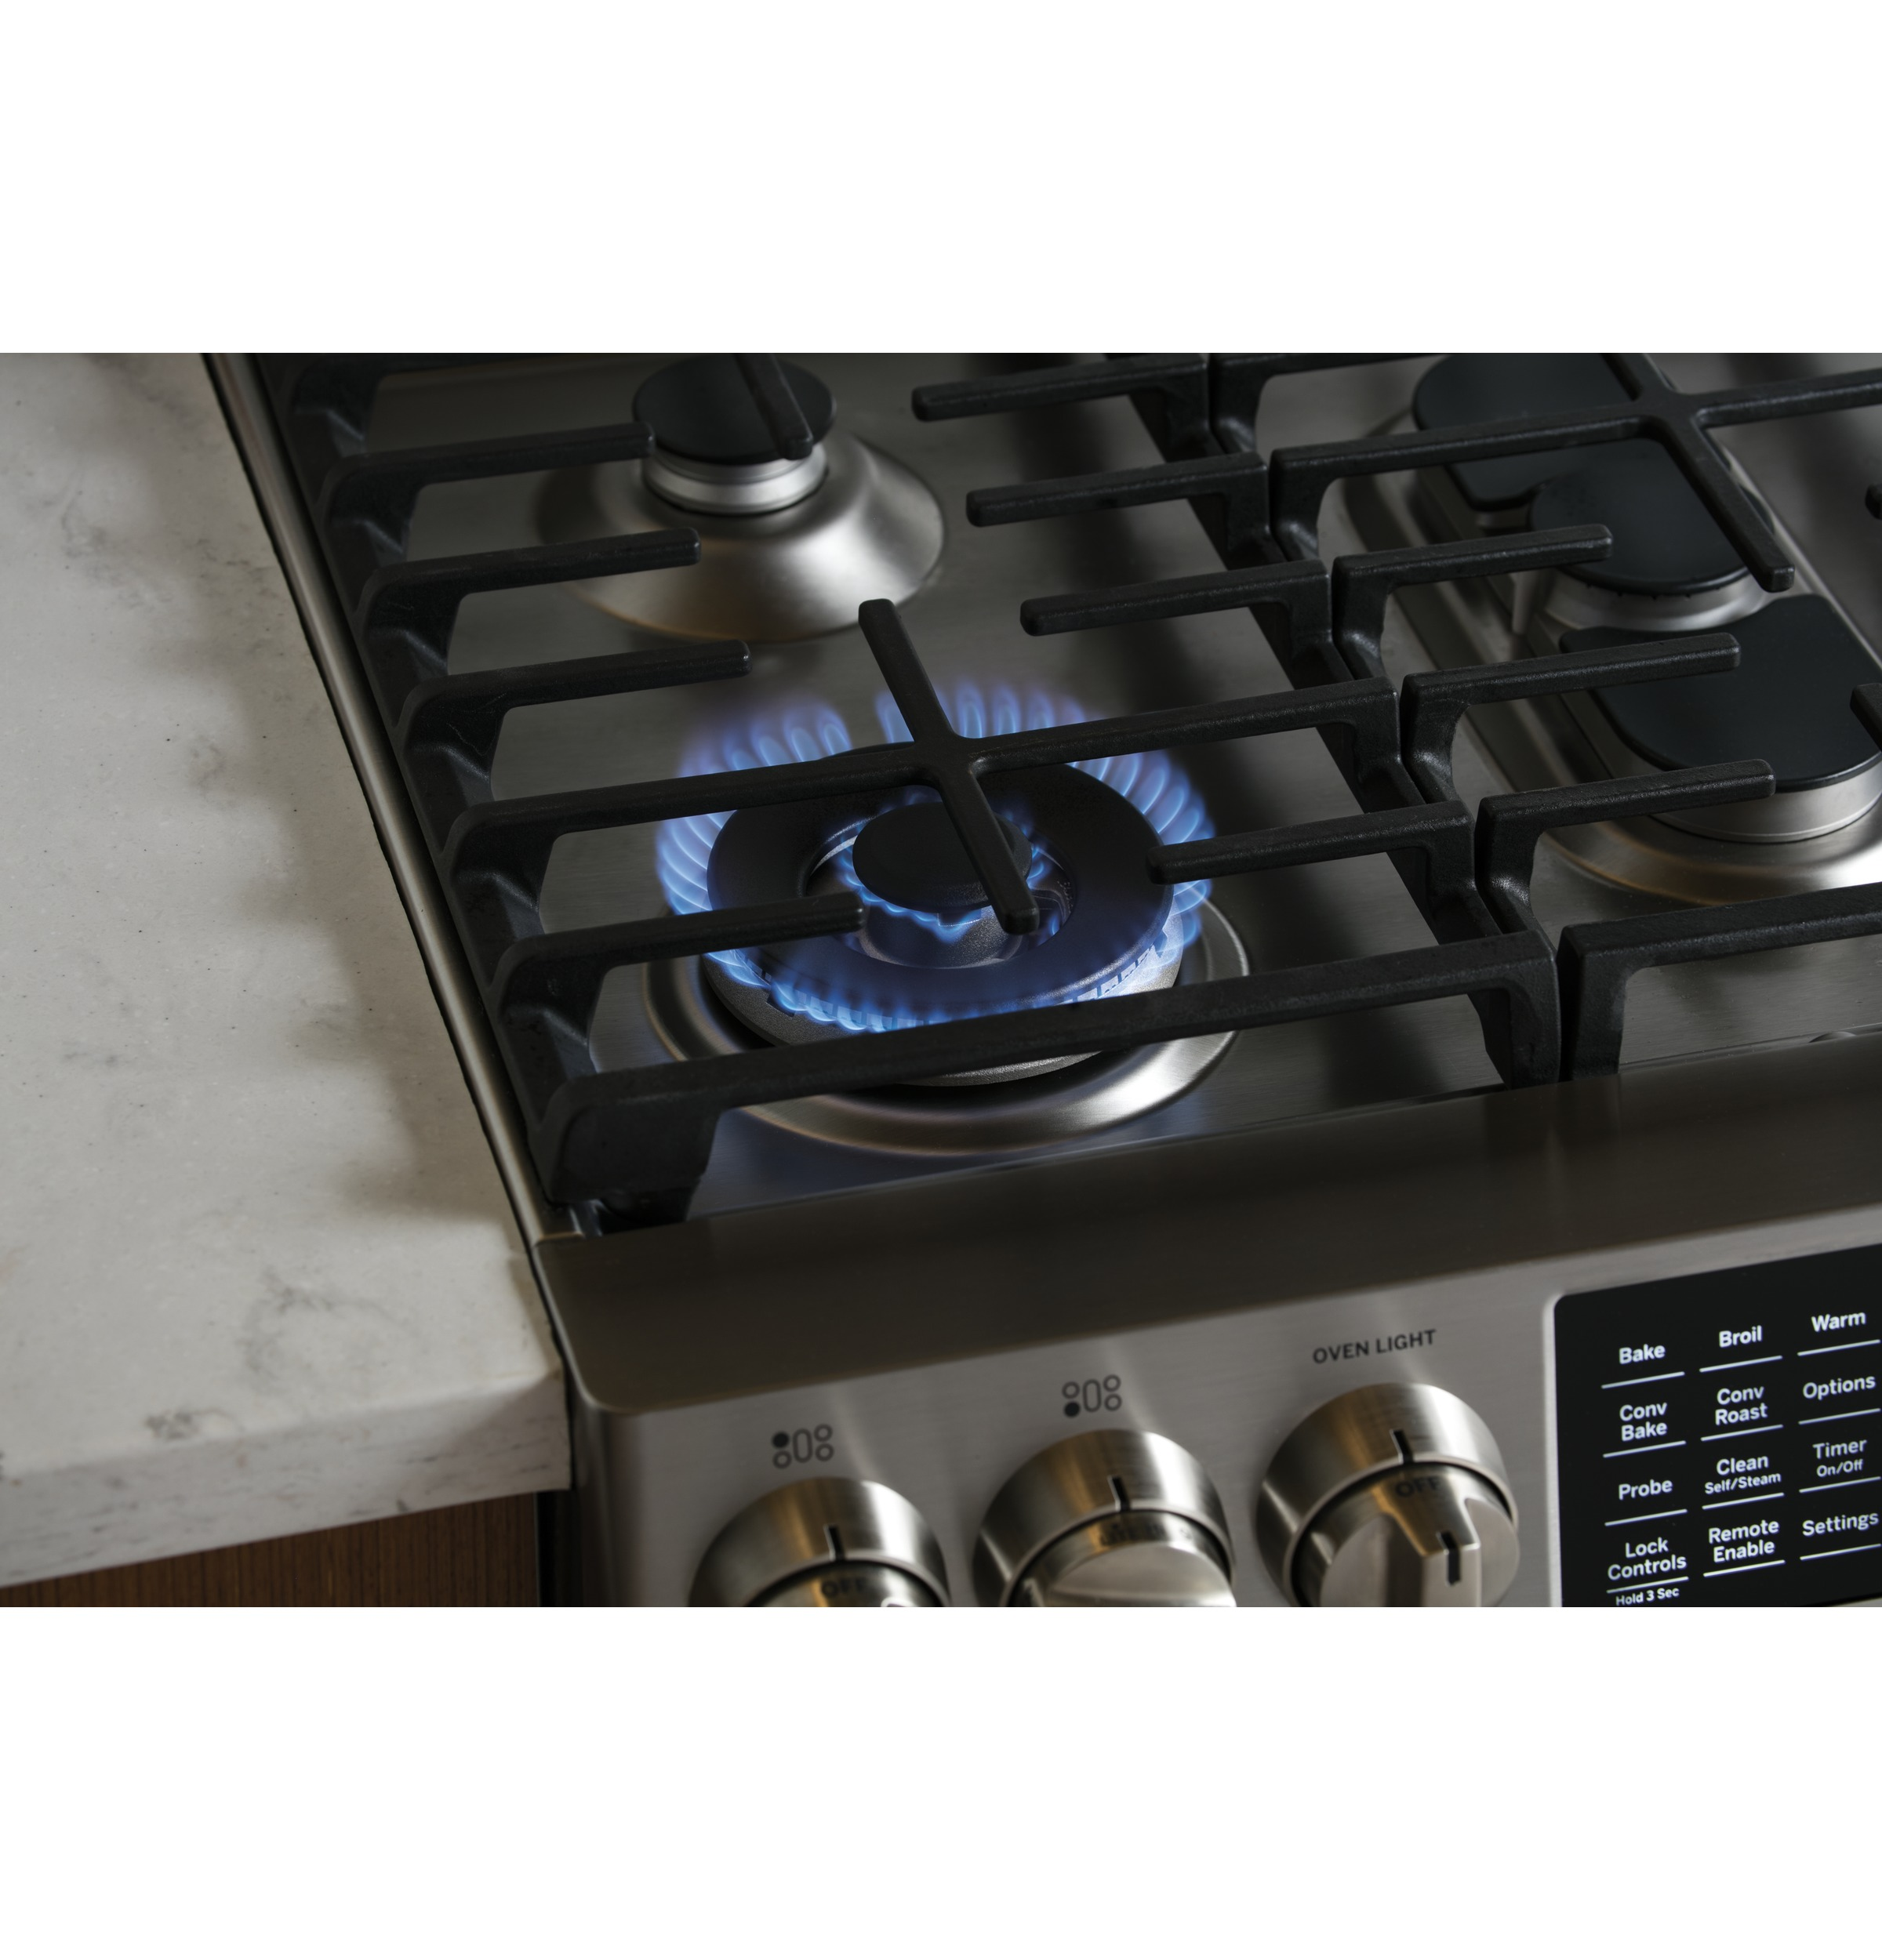 GE P2S930SELSS Sealed Burner Cooktop